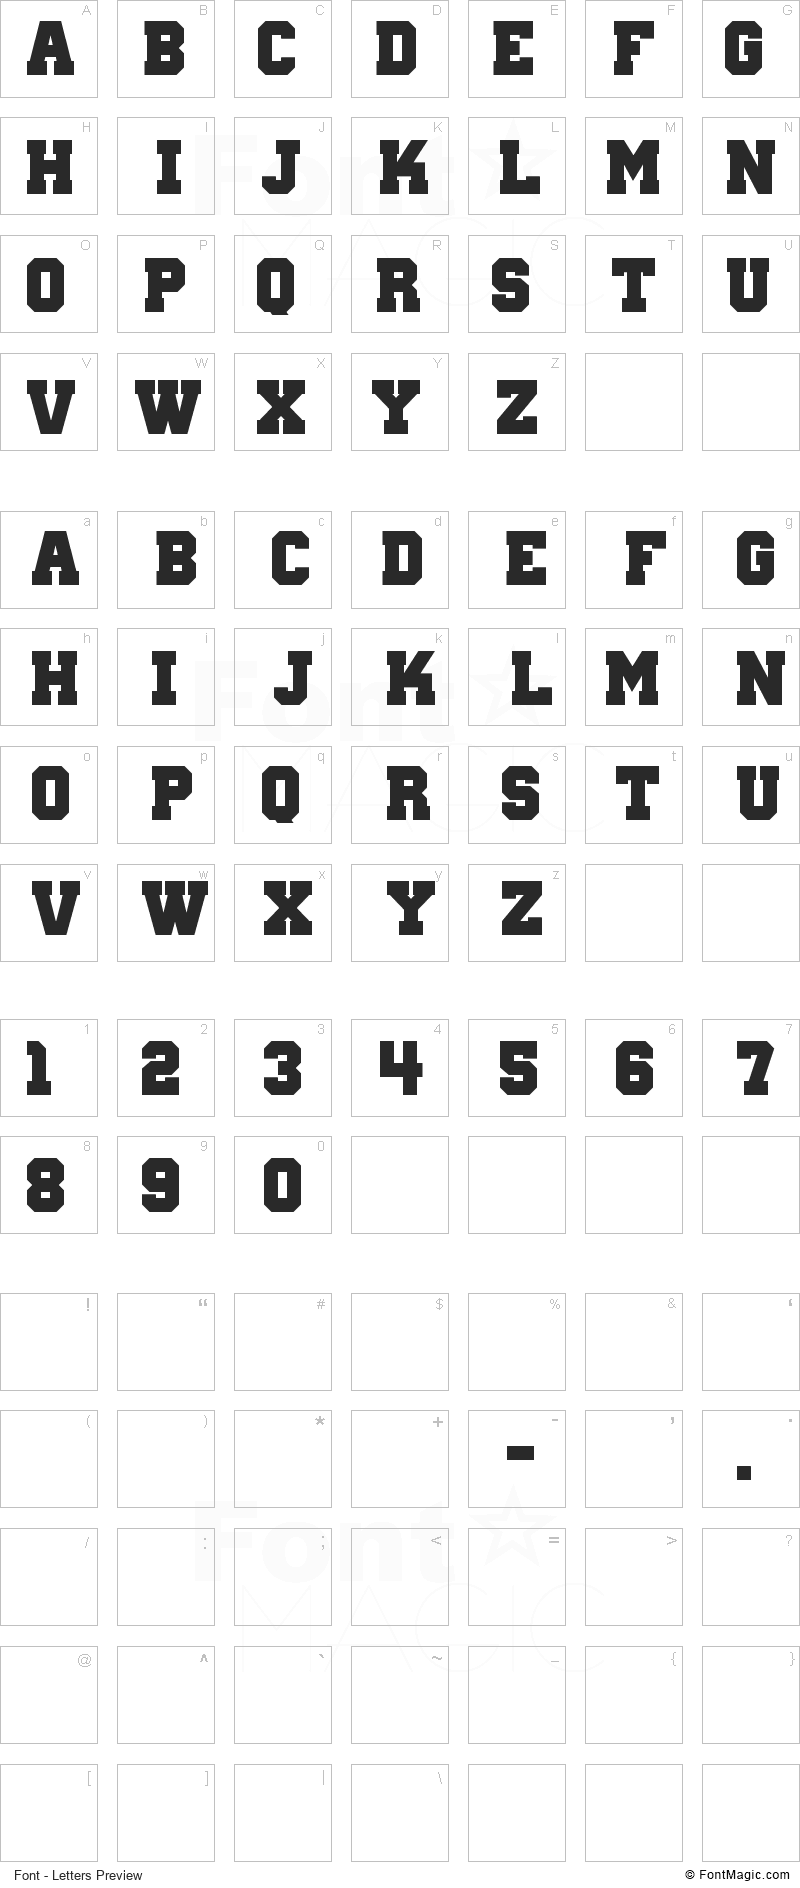 Wanted M54 Font - All Latters Preview Chart